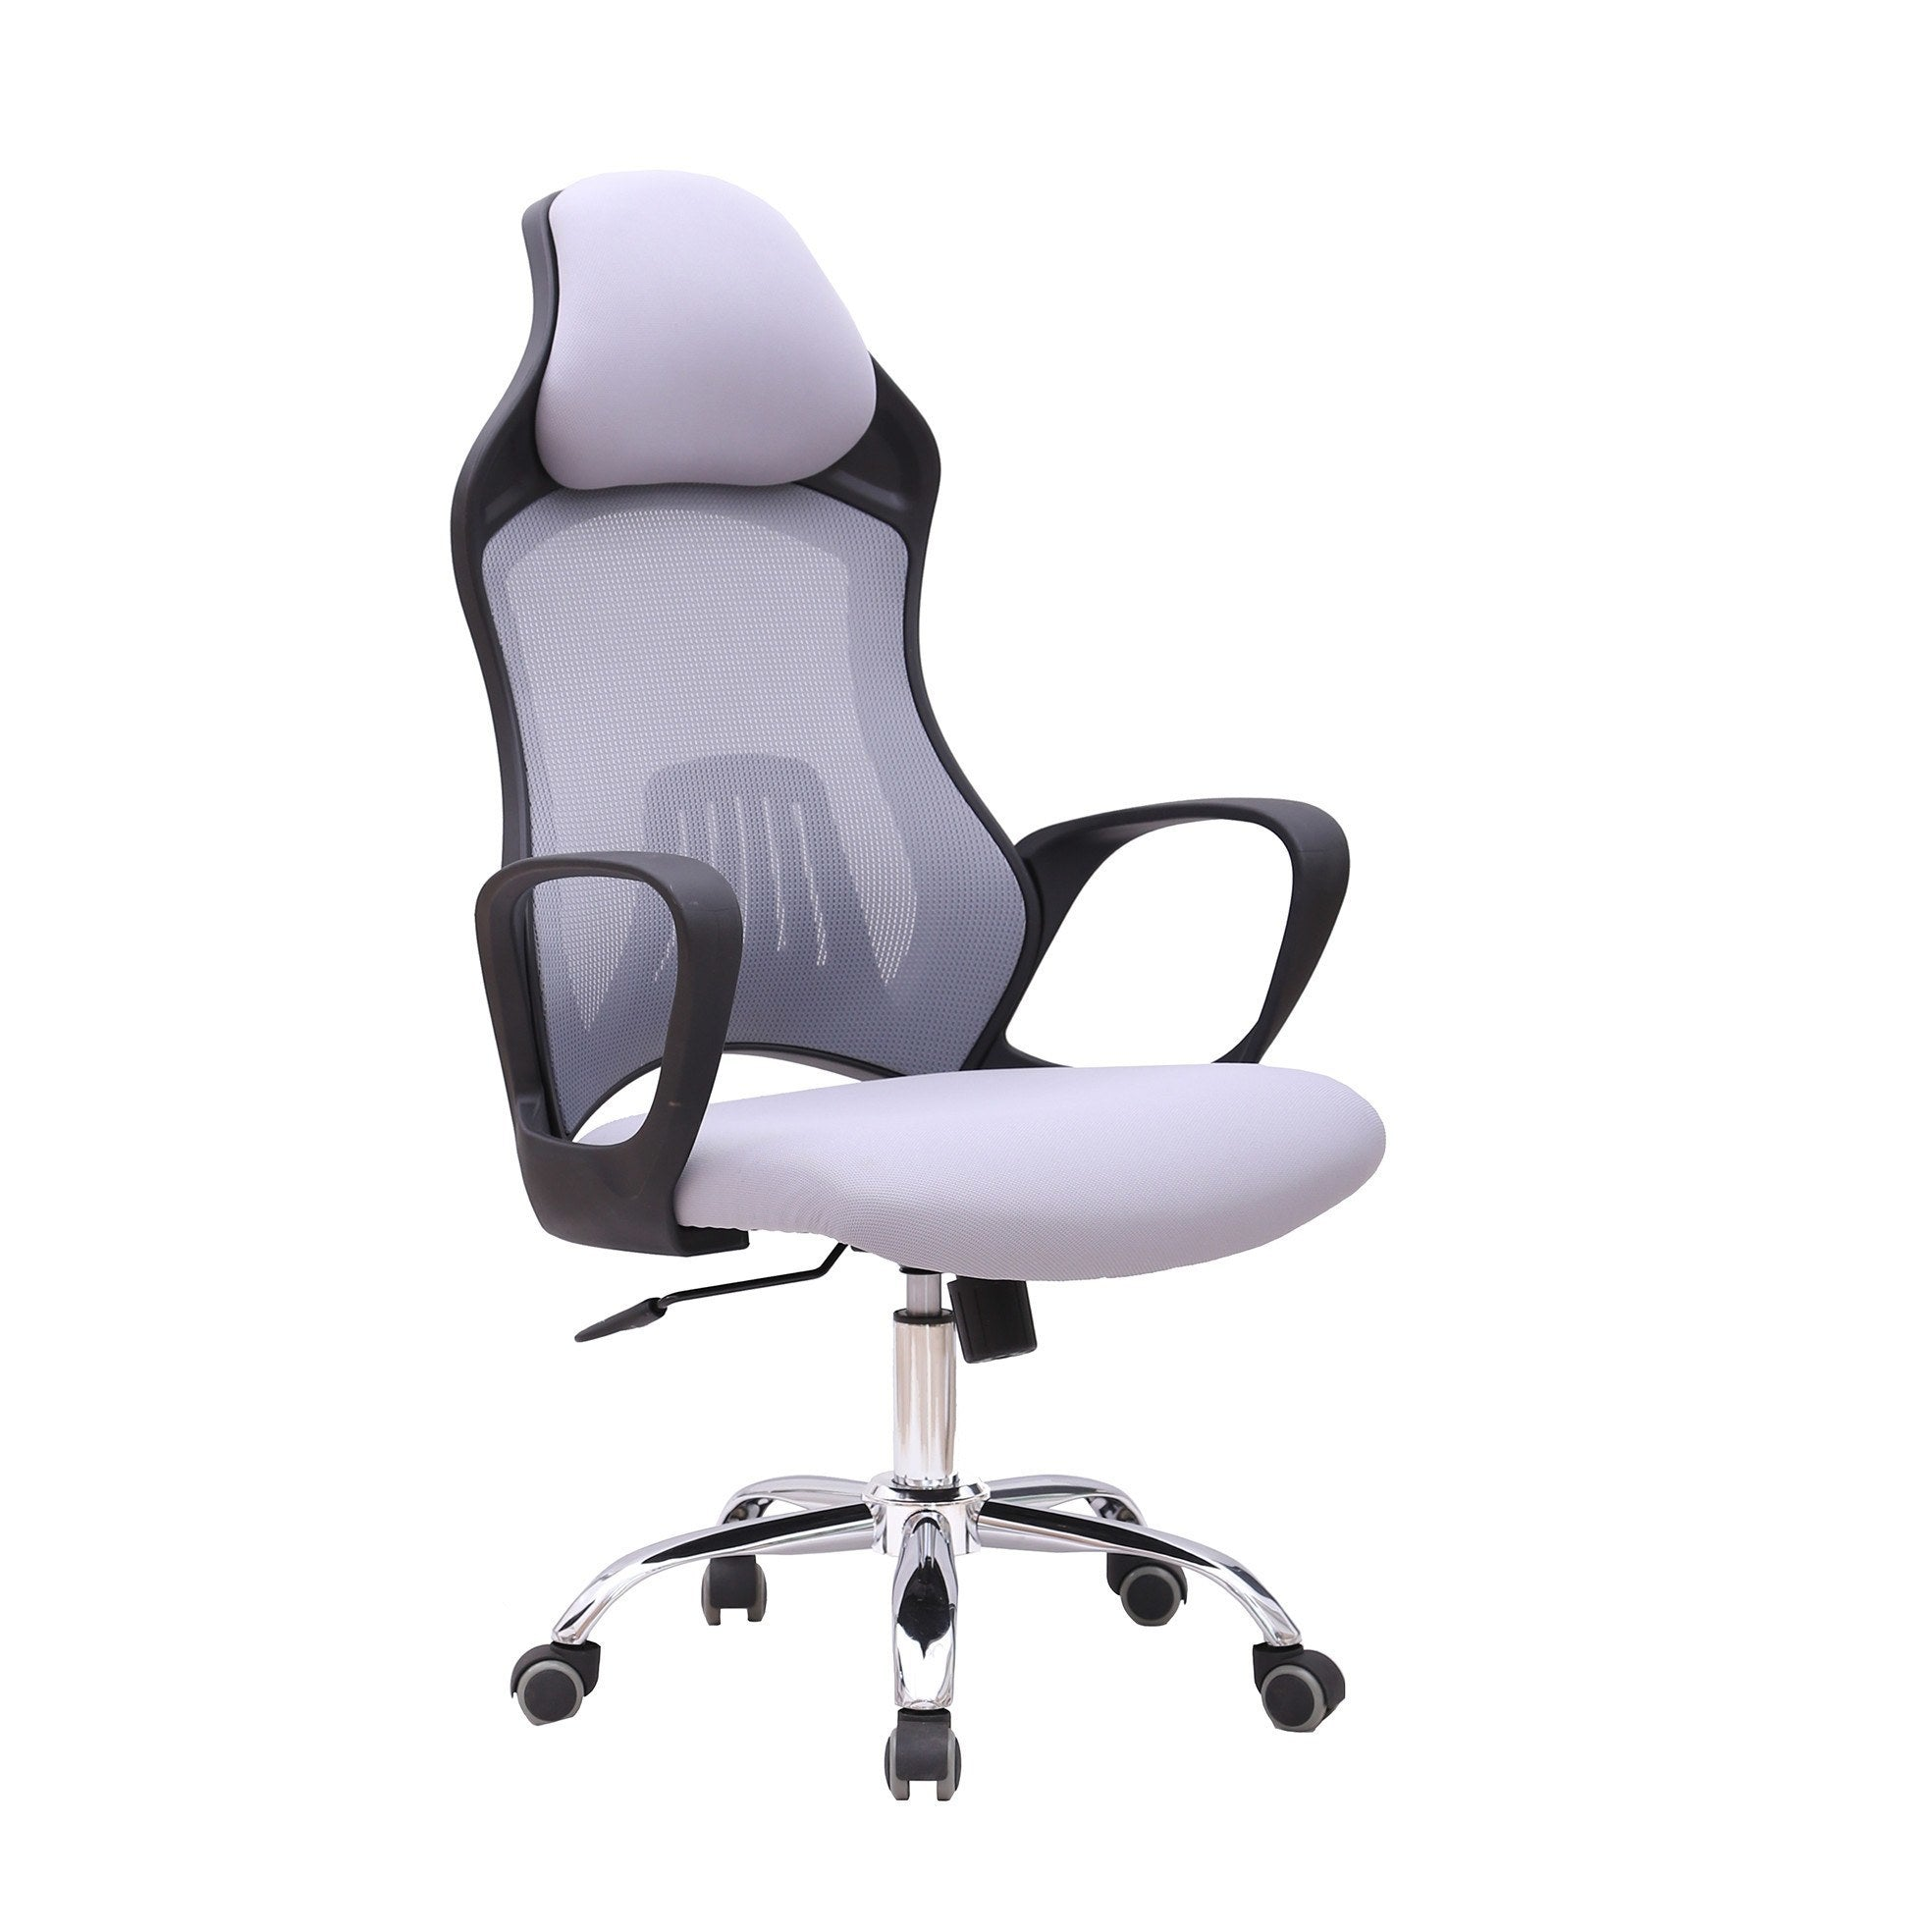 executive shipping garden free grey fabric today home chair high overstock office product homcom light gray back